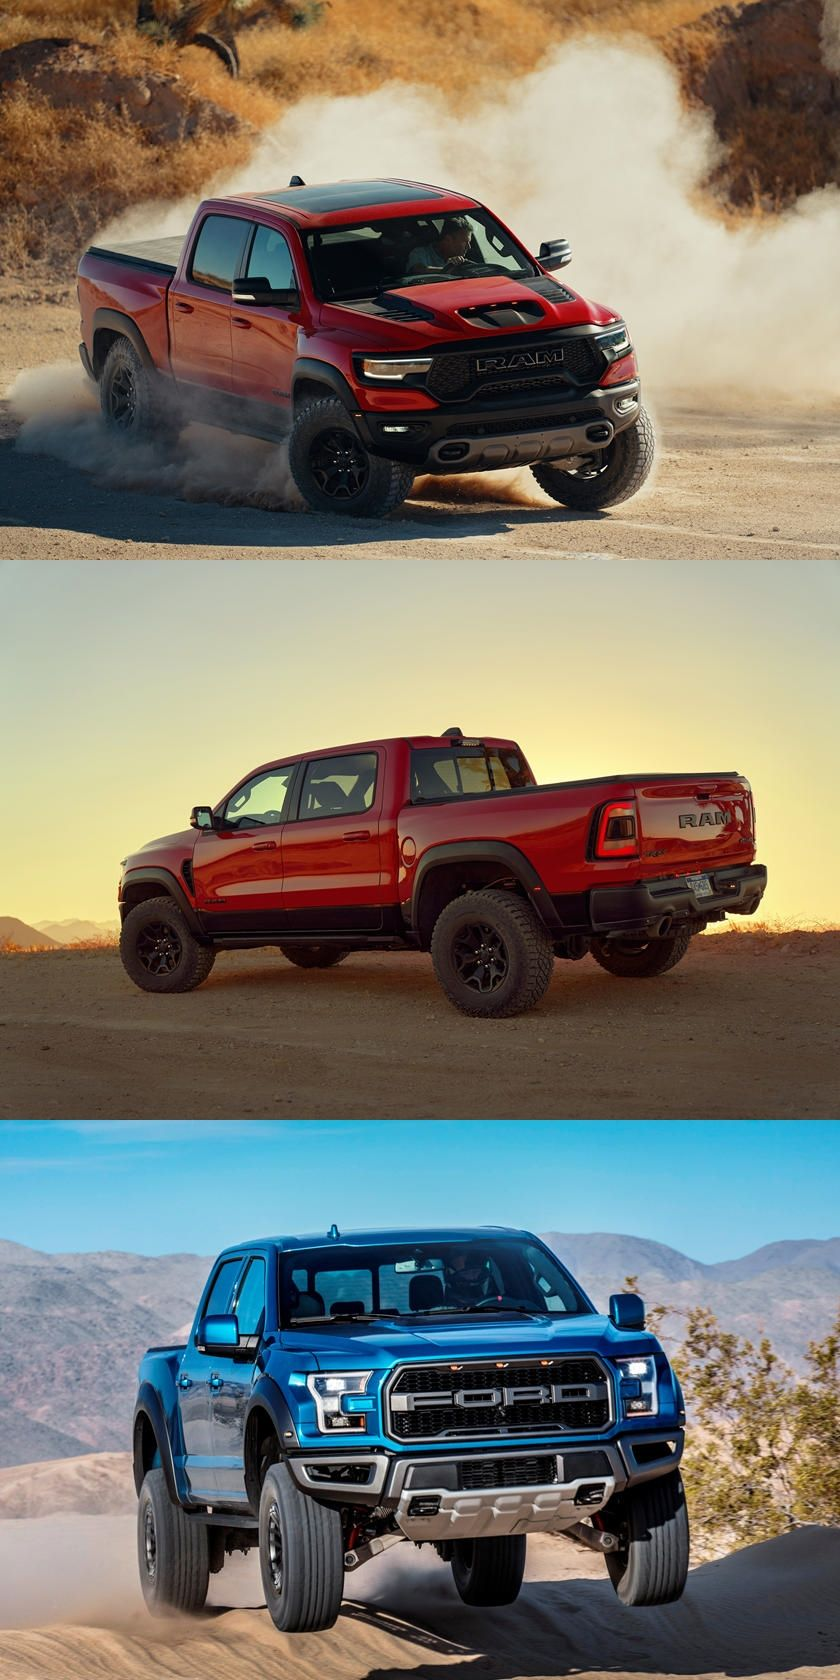 Ford F 150 Raptor Vs Ram 1500 Trx Which Is The Off Road King Is There A New Truck Benchmark Classic Cars Trucks Trx Ford F150